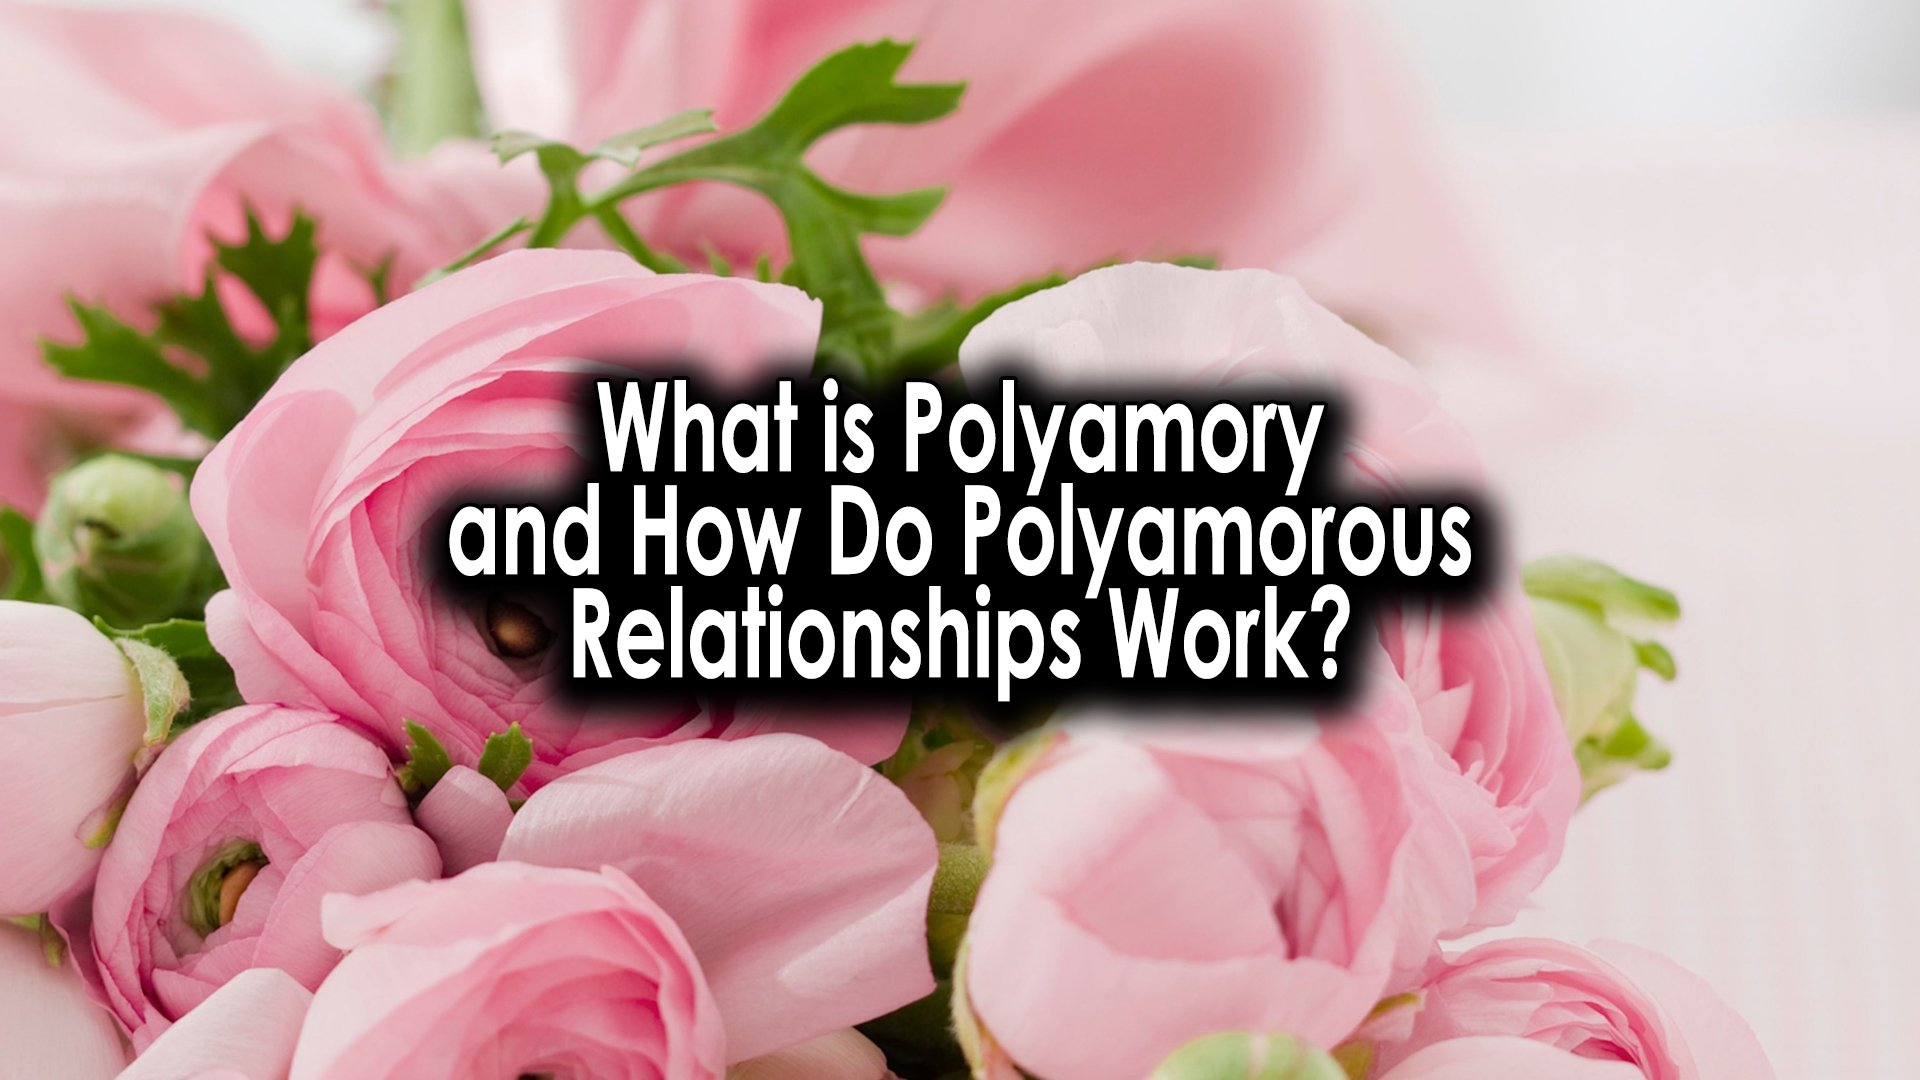 what is a polyamorous relationship polyamory what is polyamory how do relationships work lifestyle self care life love advice 2020 wolfparty3 fenxwolf dahliaxwolf wolfparty3 videos